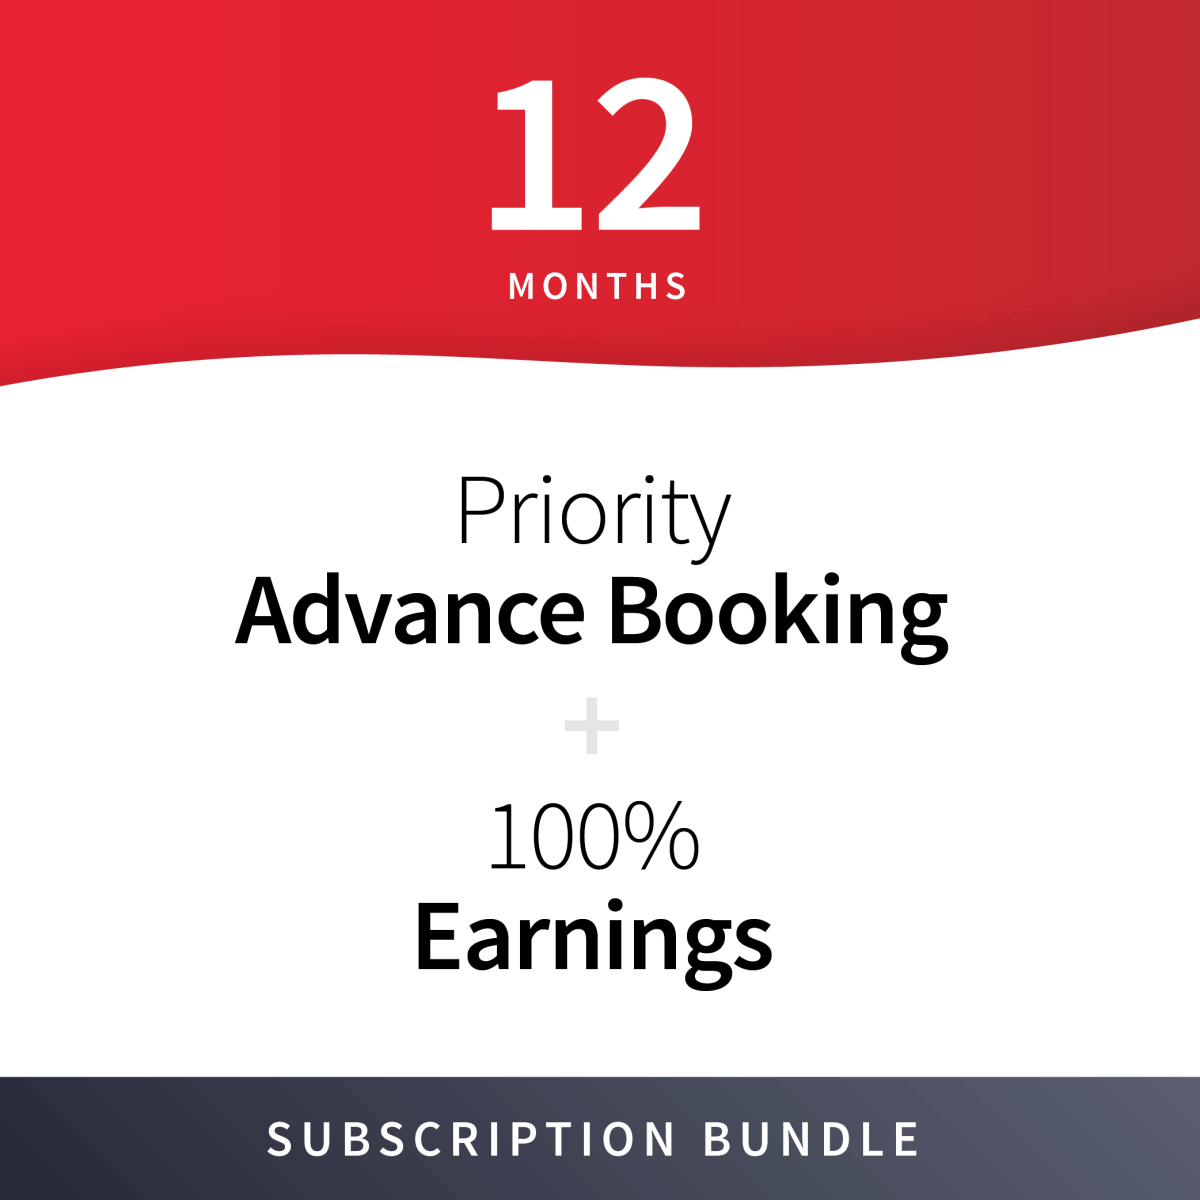 100% Earnings + Priority Advance Booking Subscription Bundle - 12 Months 2